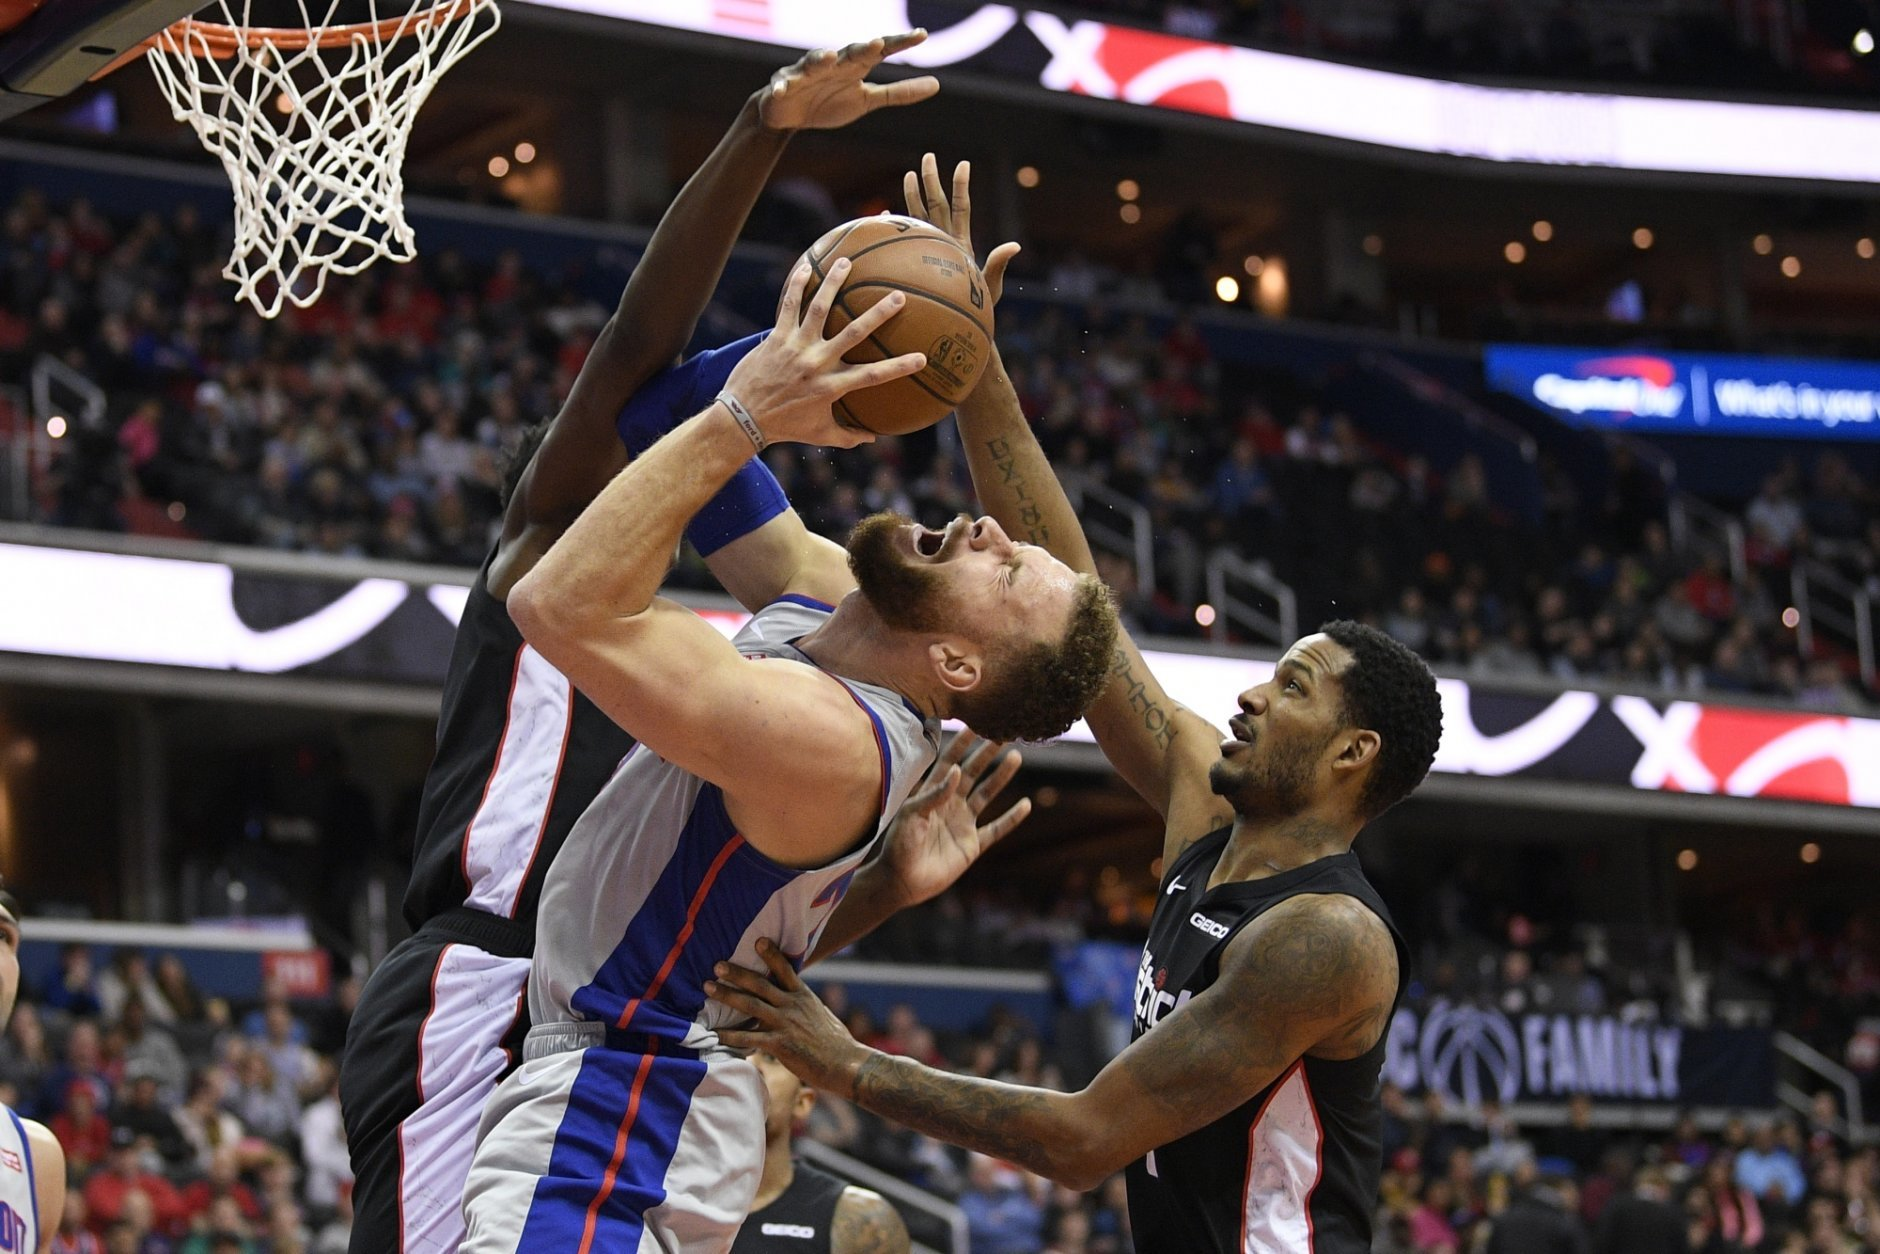 Detroit Pistons forward Blake Griffin, front, is fouled while going against Washington Wizards center Thomas Bryant, back, and forward Trevor Ariza, right, during the first half of an NBA basketball game, Monday, Jan. 21, 2019, in Washington. (AP Photo/Nick Wass)